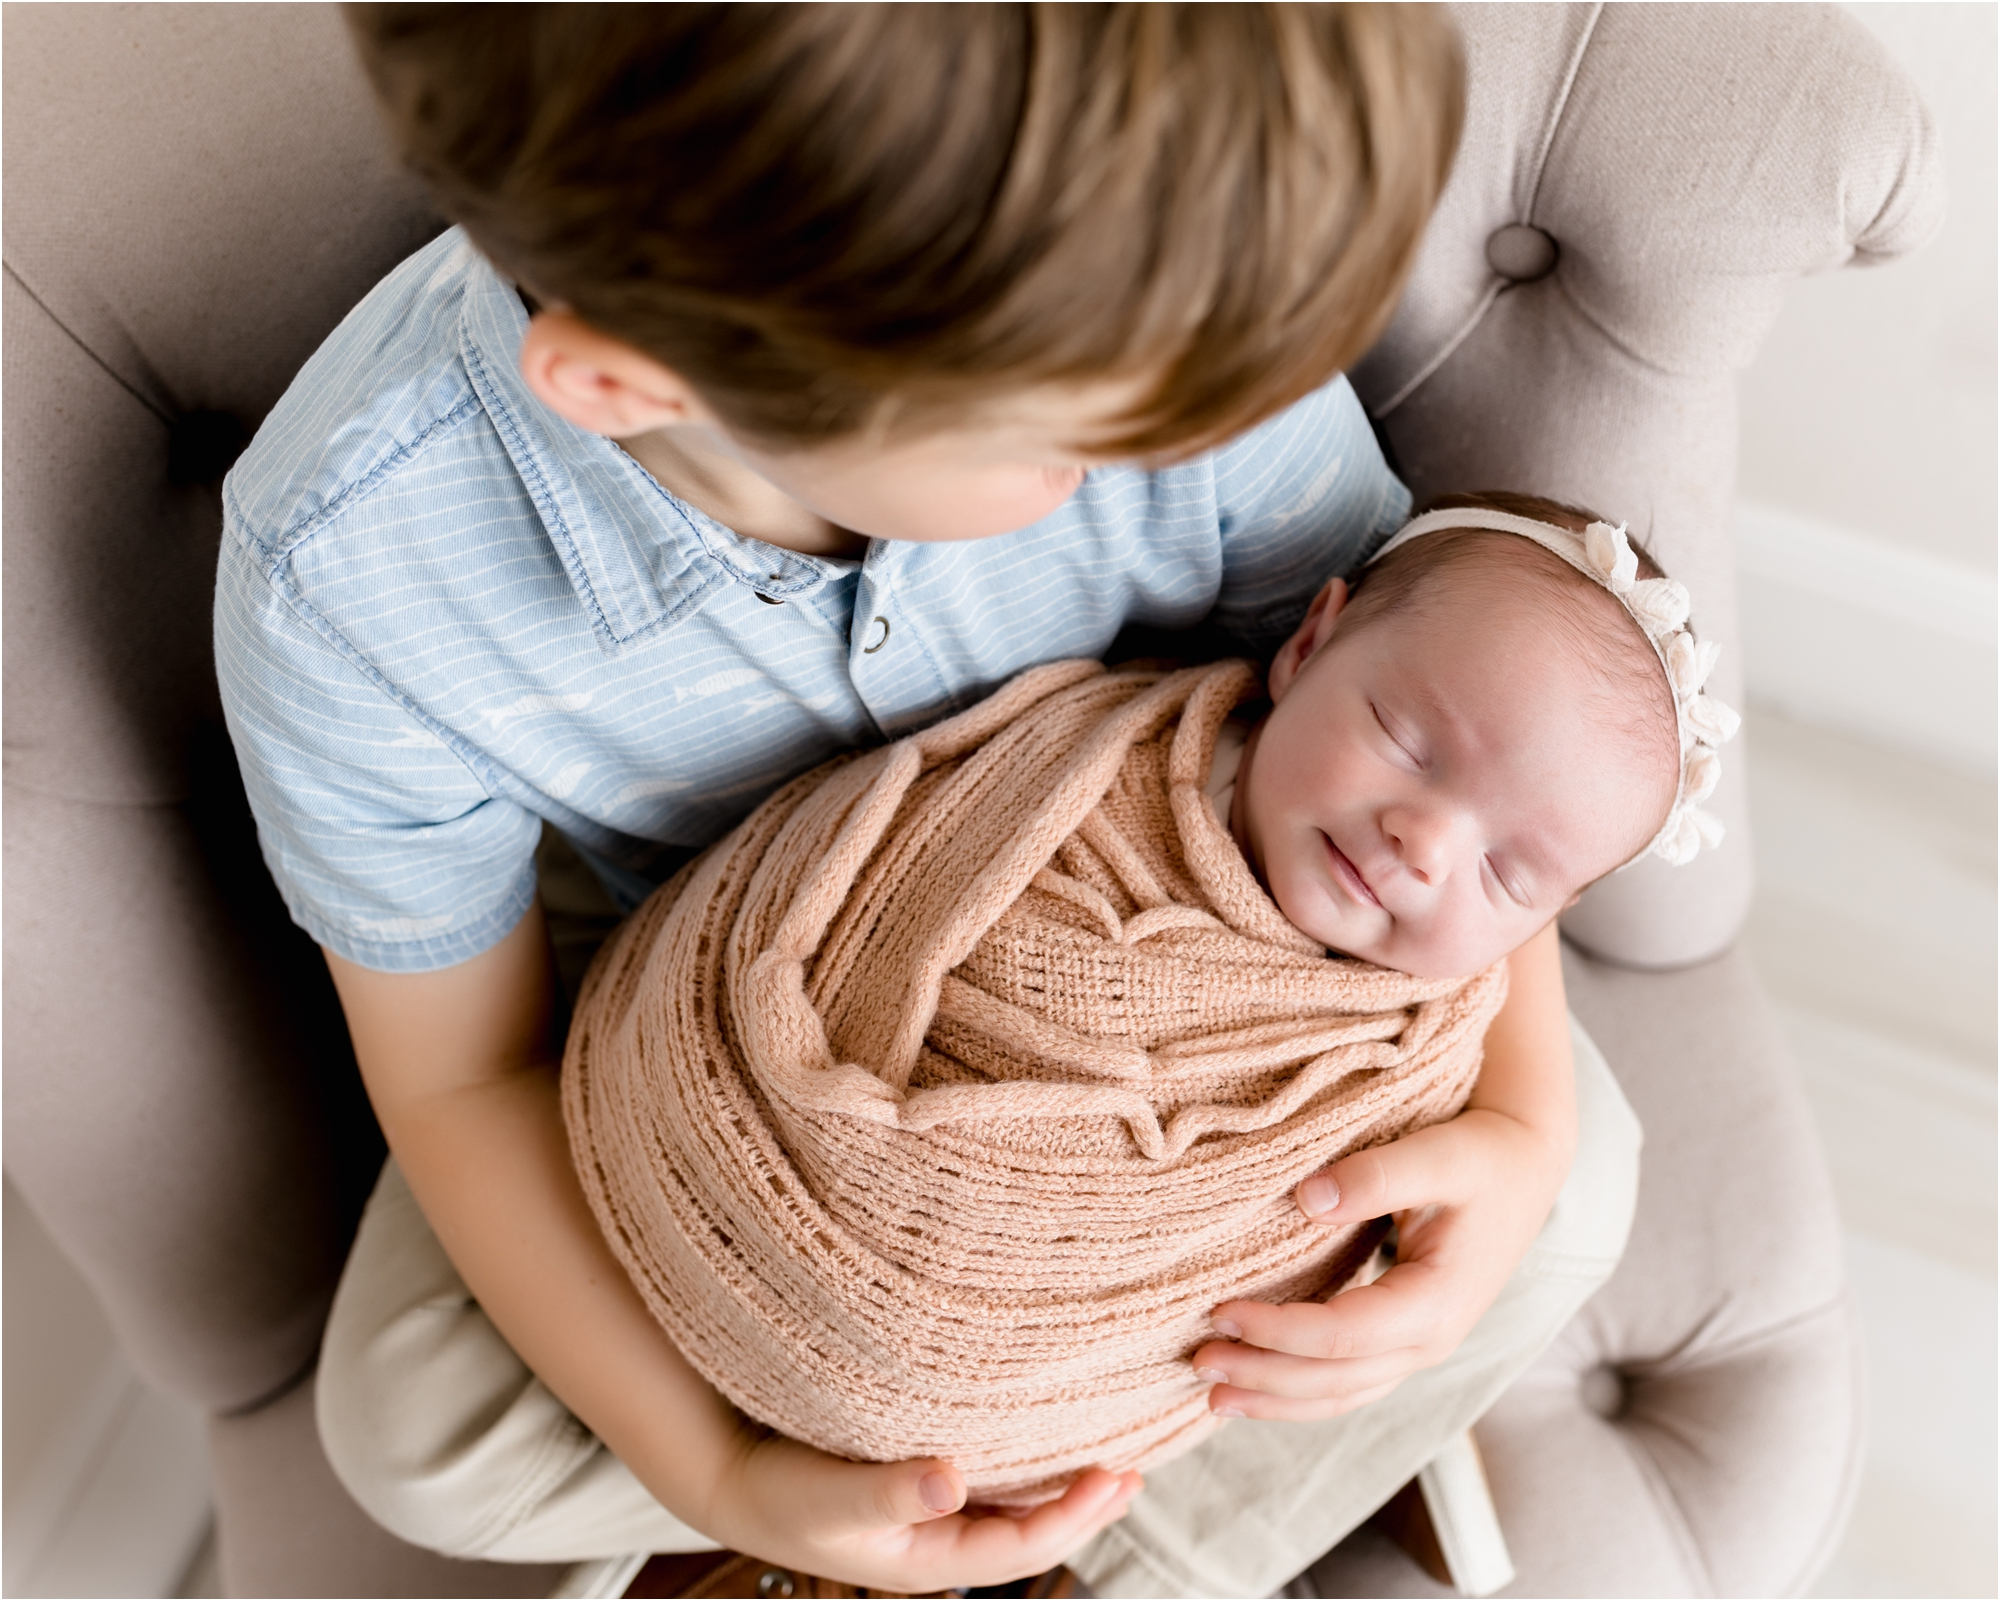 Image of baby sister being held by brother while baby is swaddled. Photo by Katy TX newborn photographer, Lifetime of Clicks Photography.